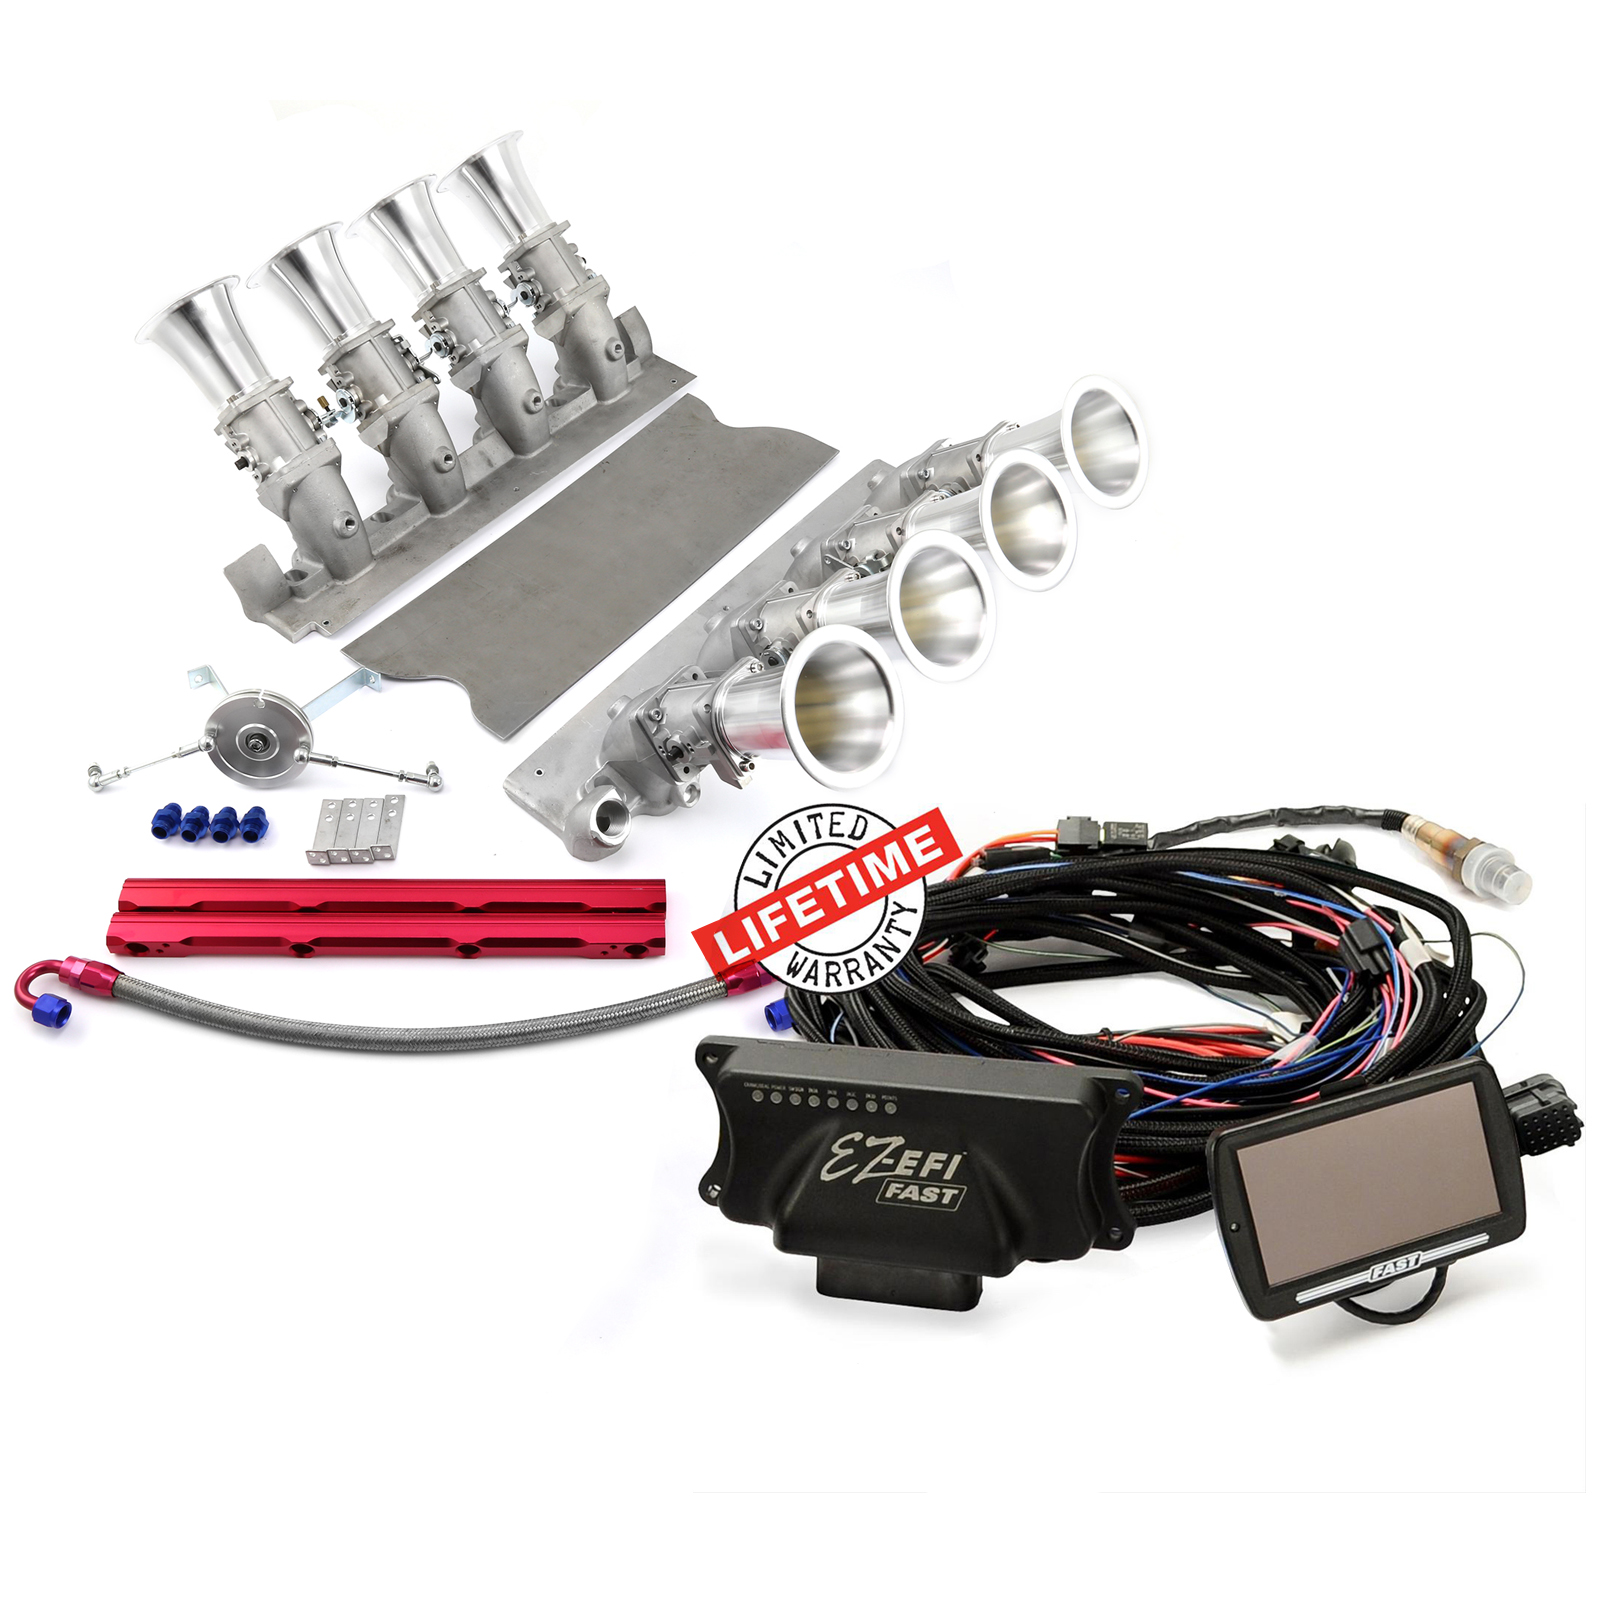 FAST, Speedmaster® PCE148.1077 Ford 302 351C Manifold 30404 FAST EZ-EFI 2.0 Self-Tuning Fuel Injection System